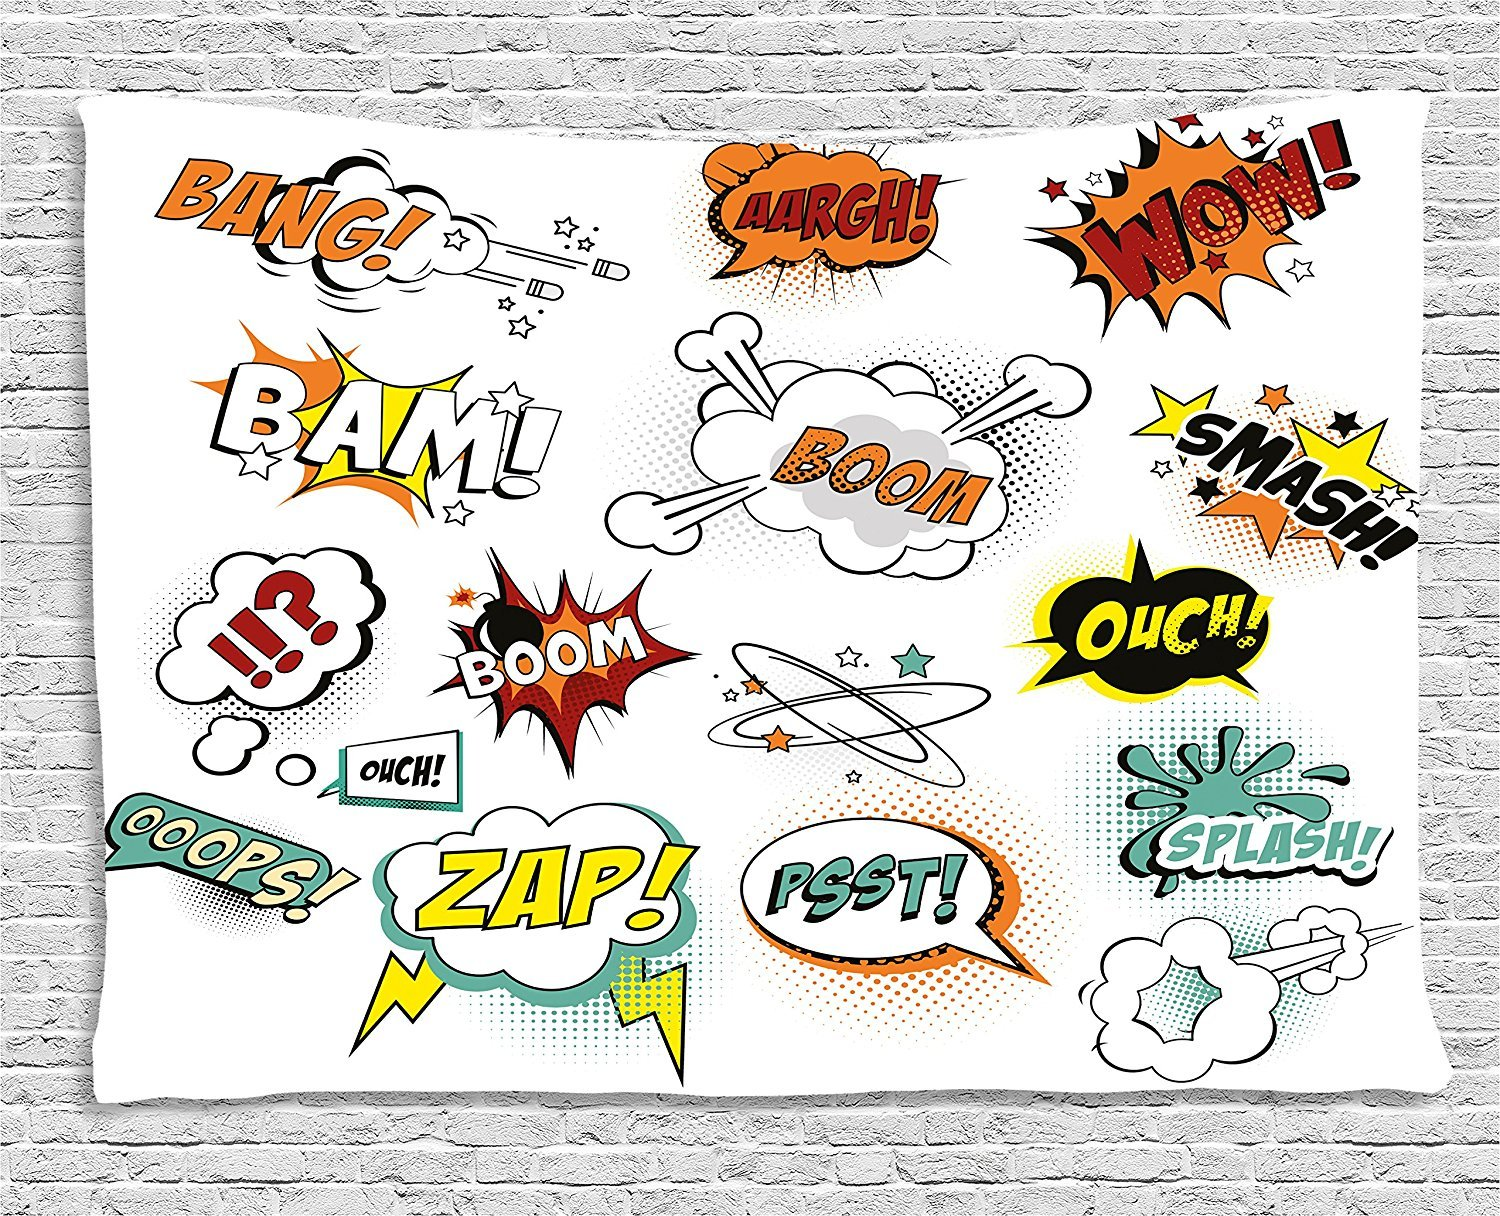 asddcdfdd Superhero Tapestry, Retro Fiction Speech Bubbles Famous Strip Gestures Narrative Webcomics Drawing, Wall Hanging for Bedroom Living Room Dorm, 80 W X 60 L Inches, Multicolor